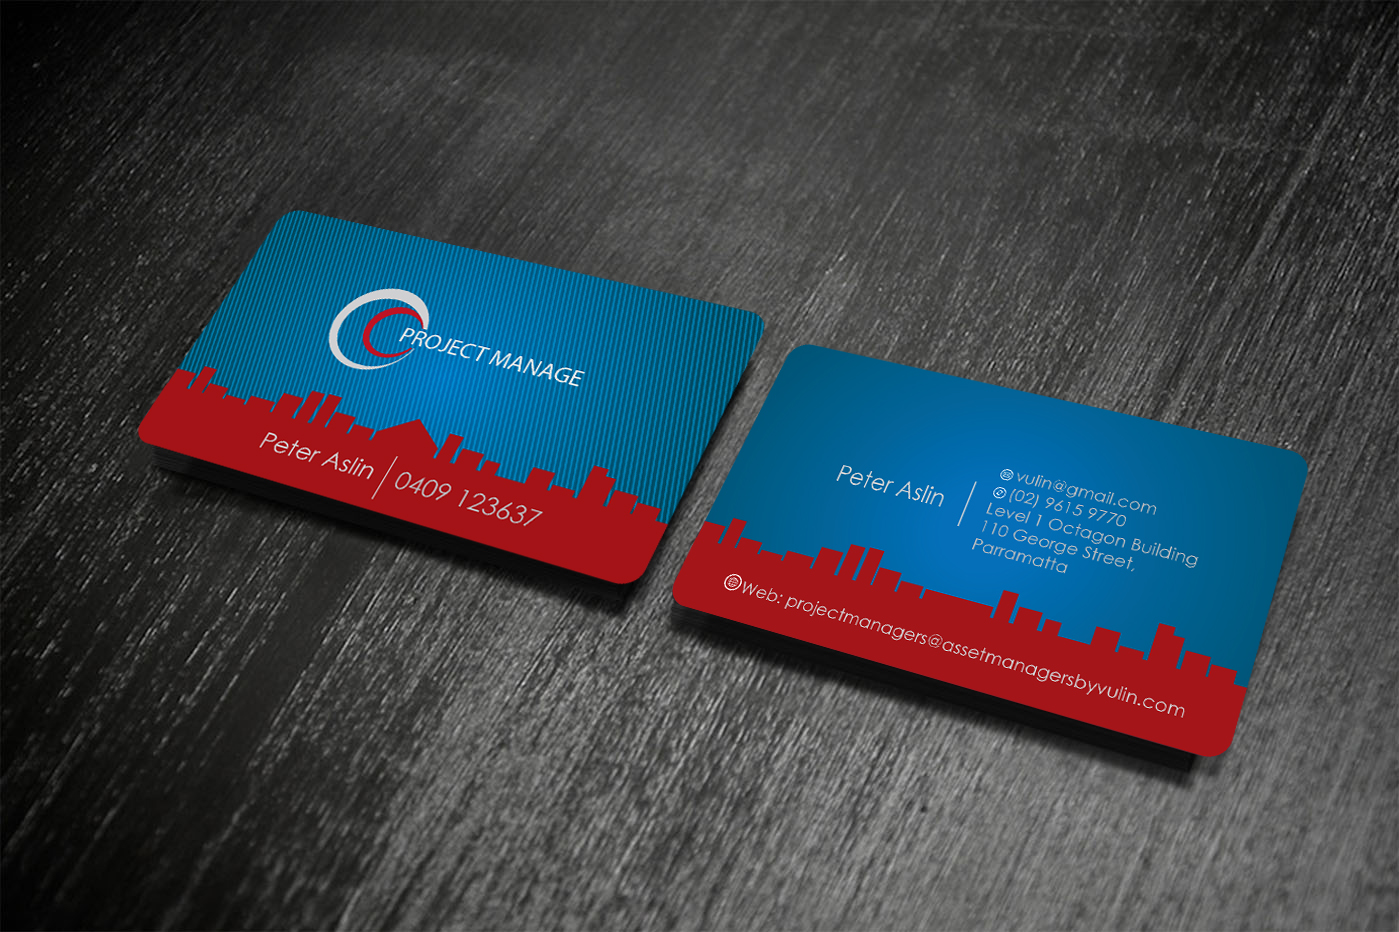 Business Card Design for Peter Aslin by creative vision | Design ...